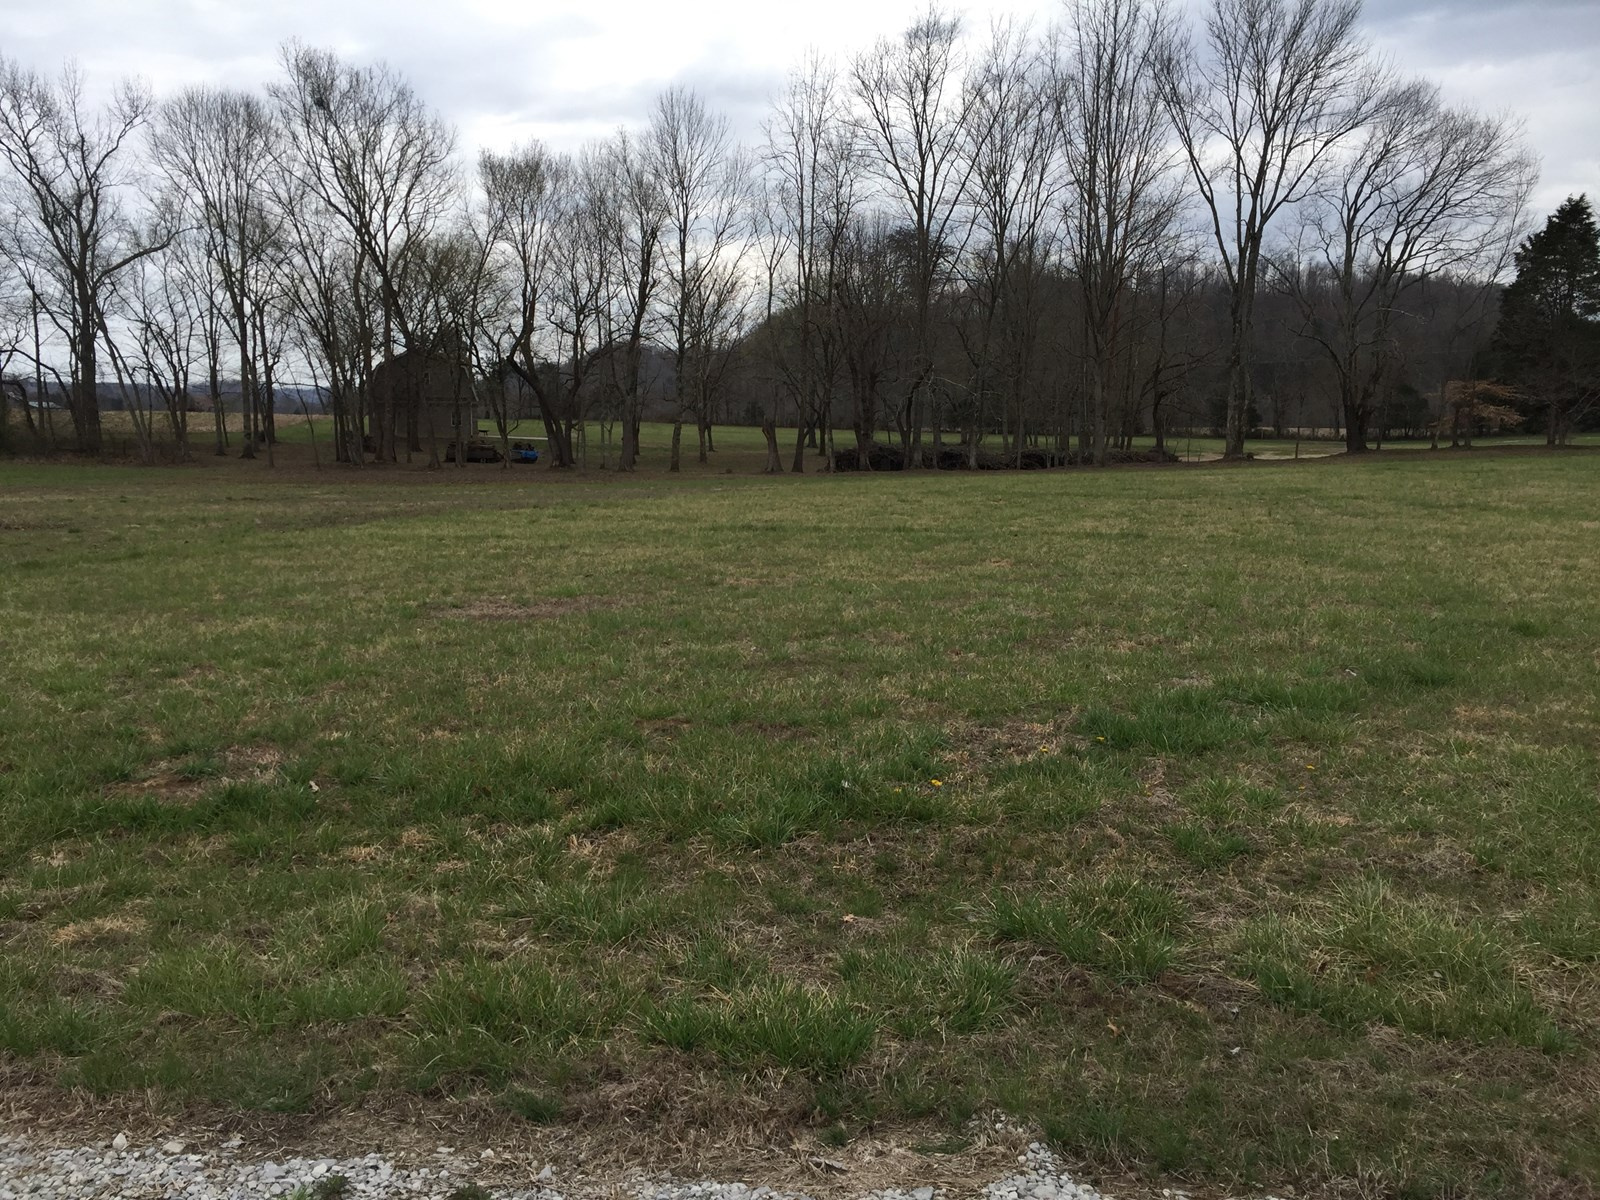 REDUCED TO SELL! Land for sale, Cumberland River, Albany, KY